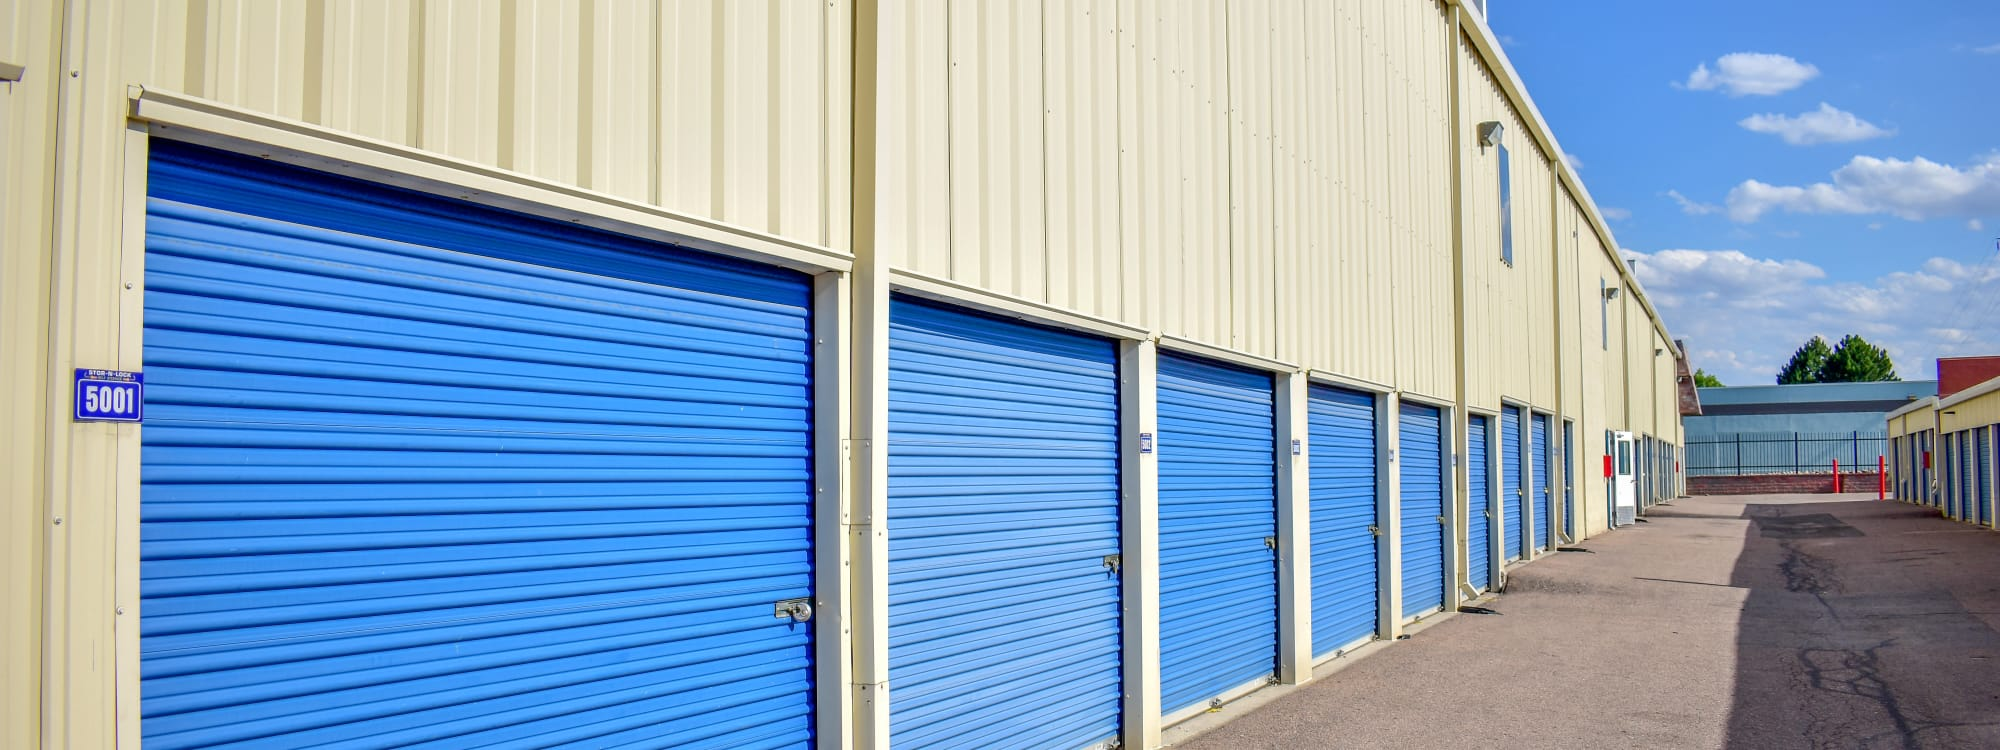 Self storage options at STOR-N-LOCK Self Storage in Aurora, Colorado